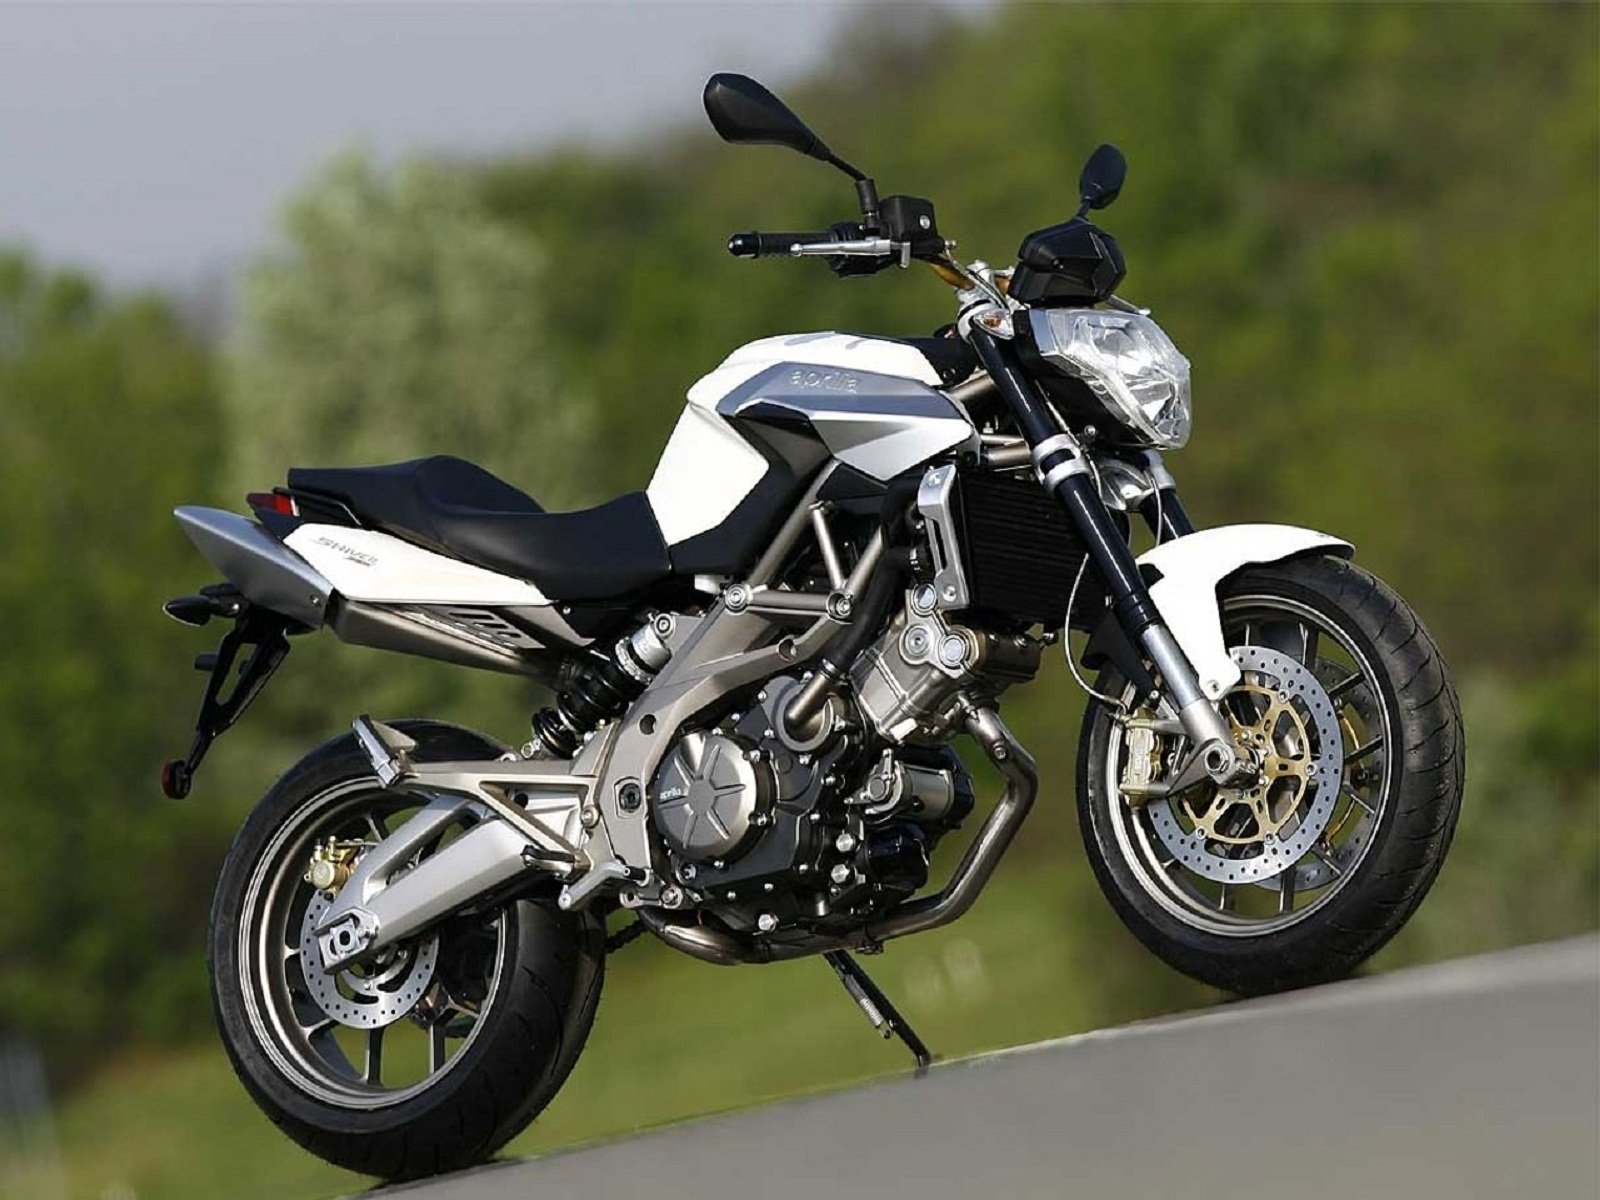 2012 aprilia shiver 750 picture 438233 motorcycle review top speed. Black Bedroom Furniture Sets. Home Design Ideas